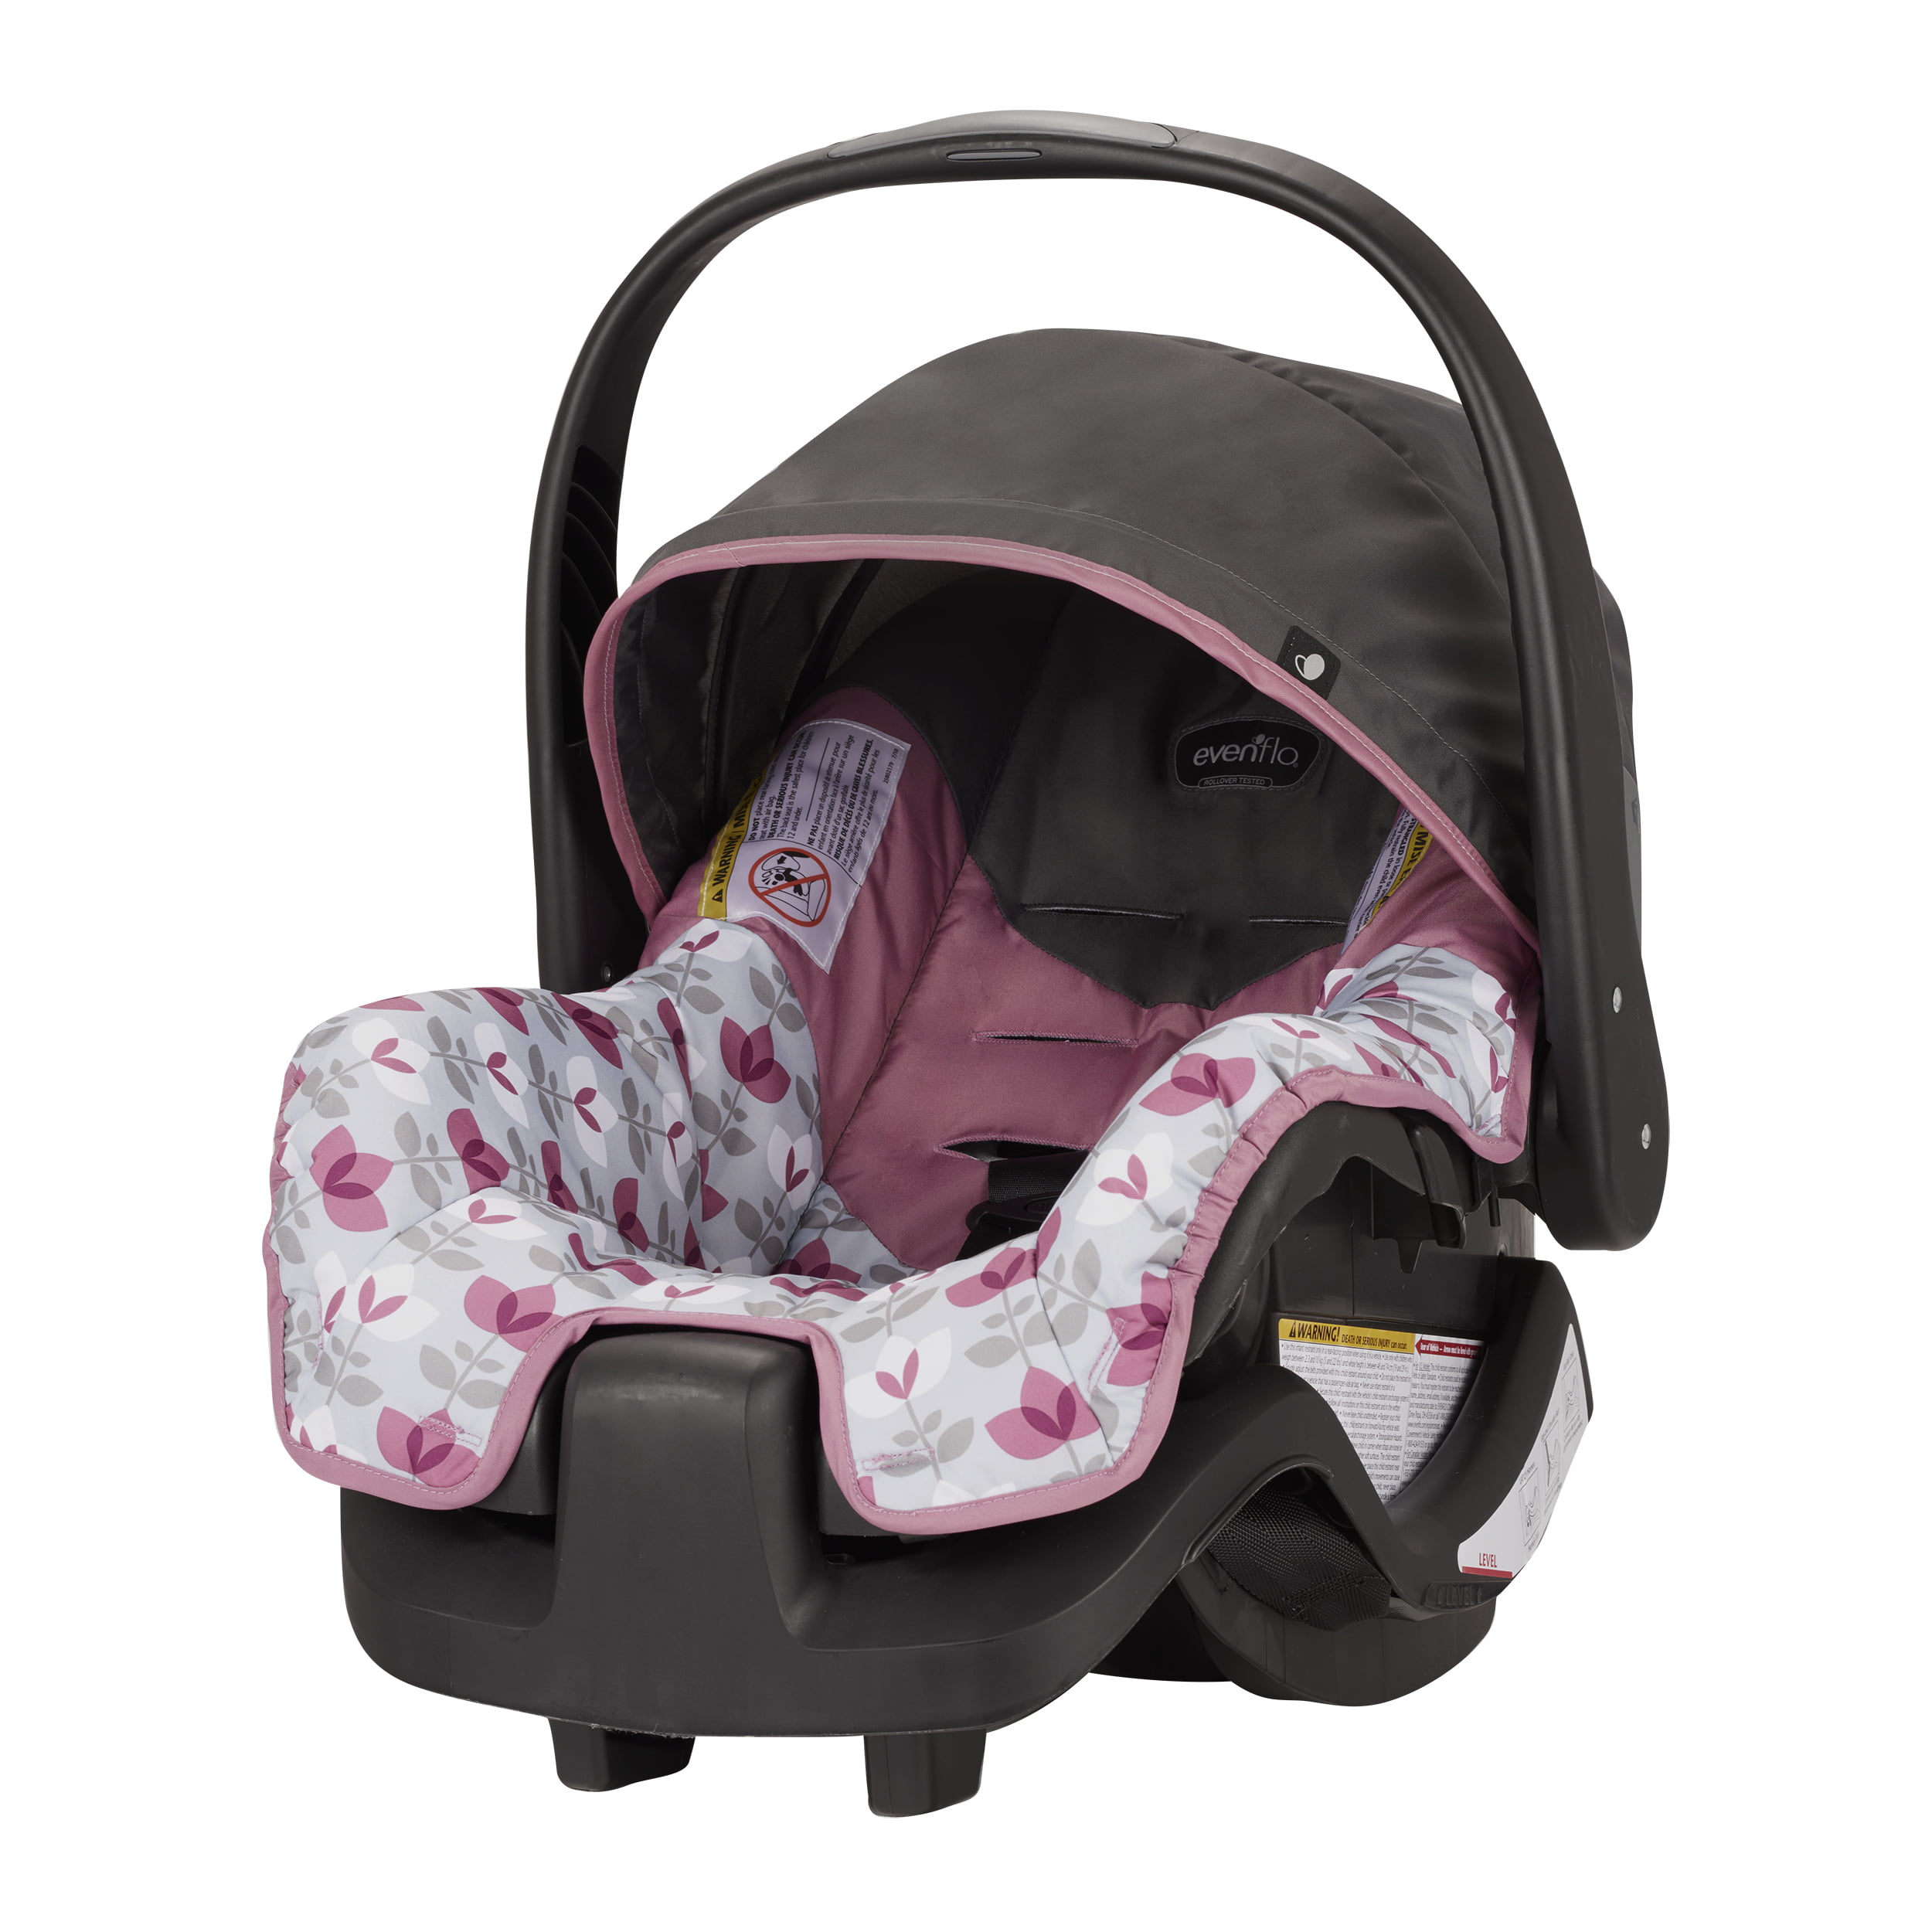 Enjoyable Evenflo Nurture Infant Car Seat Max Walmart Com Creativecarmelina Interior Chair Design Creativecarmelinacom